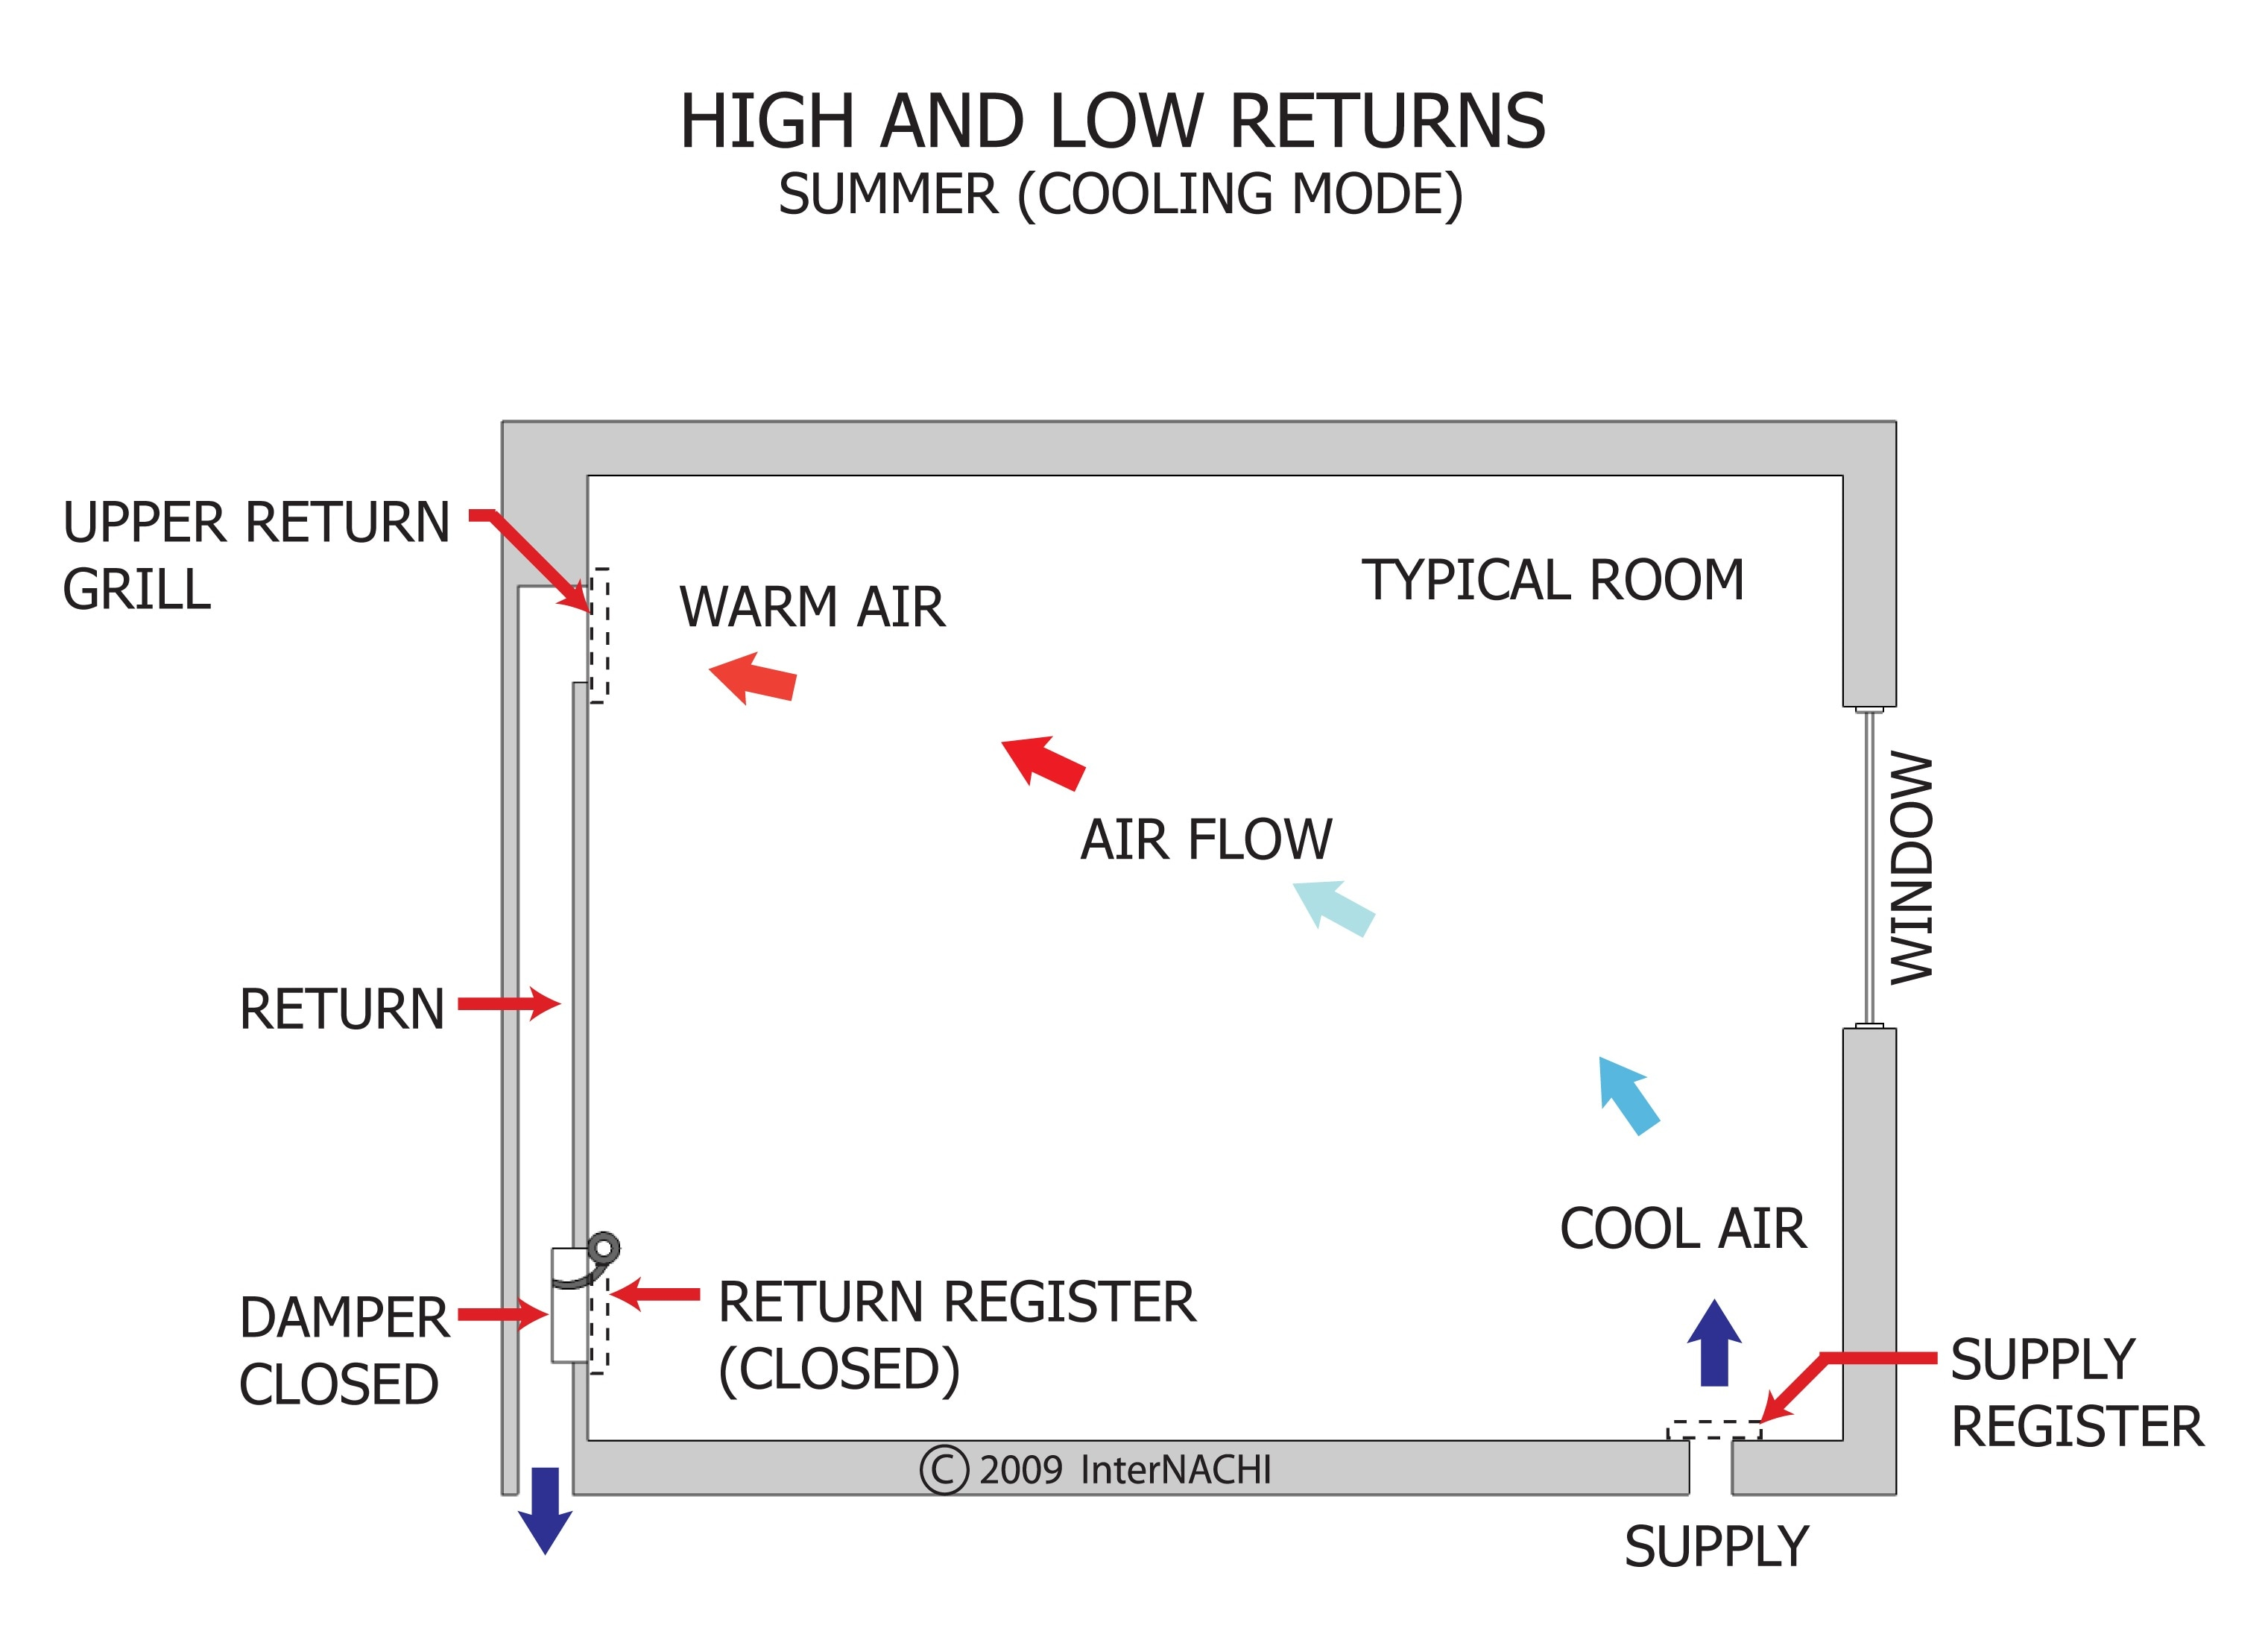 High and Low Returns (Summer)